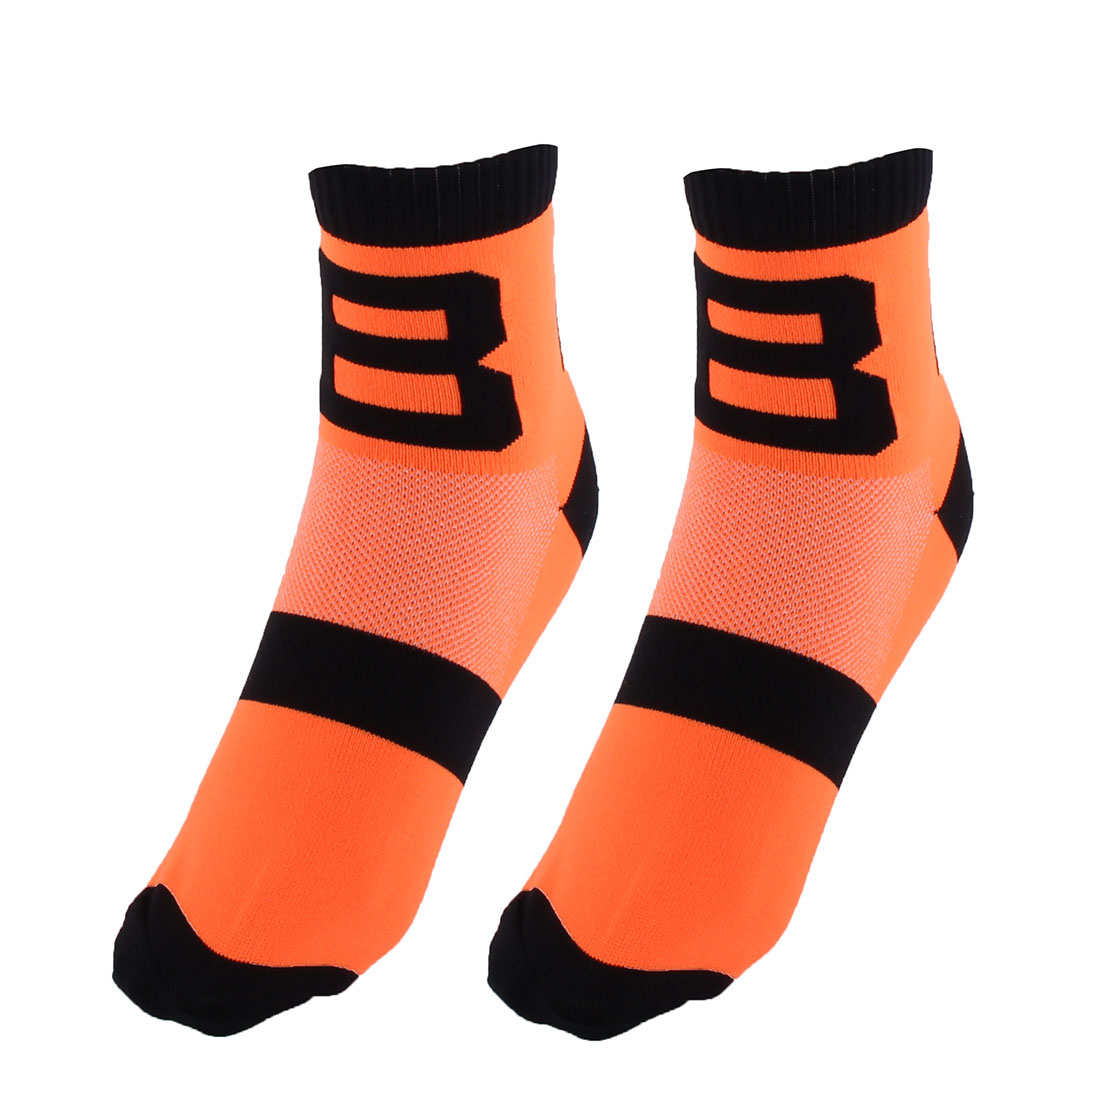 R-BAO Authorized Bicycle Football Mountain Bike Cotton Blend Compression Sports Cycling Socks Orange Pair